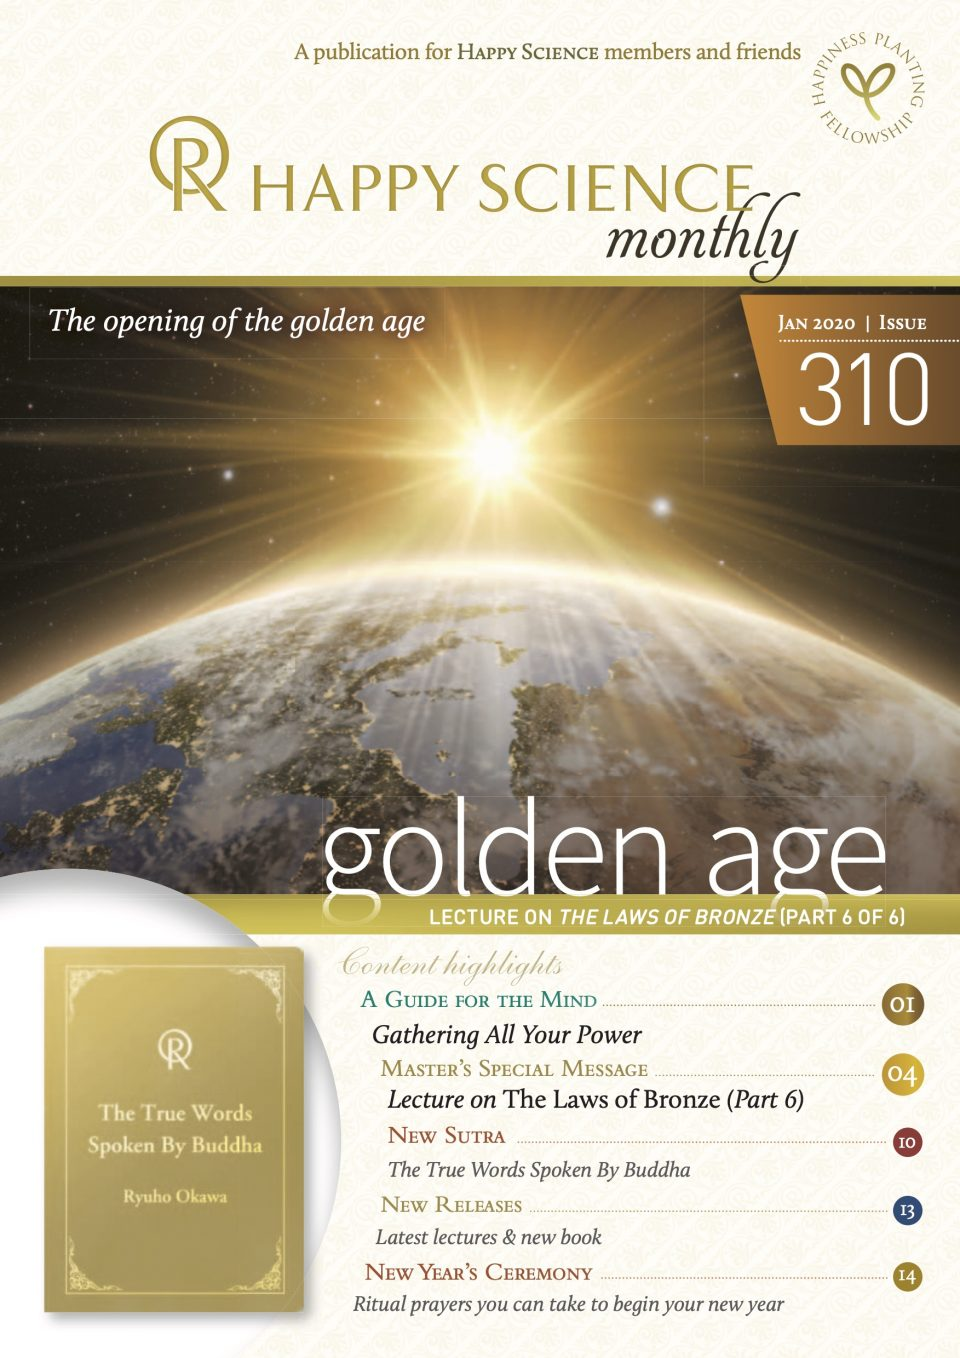 HAPPY SCIENCE Monthly 310 is released!